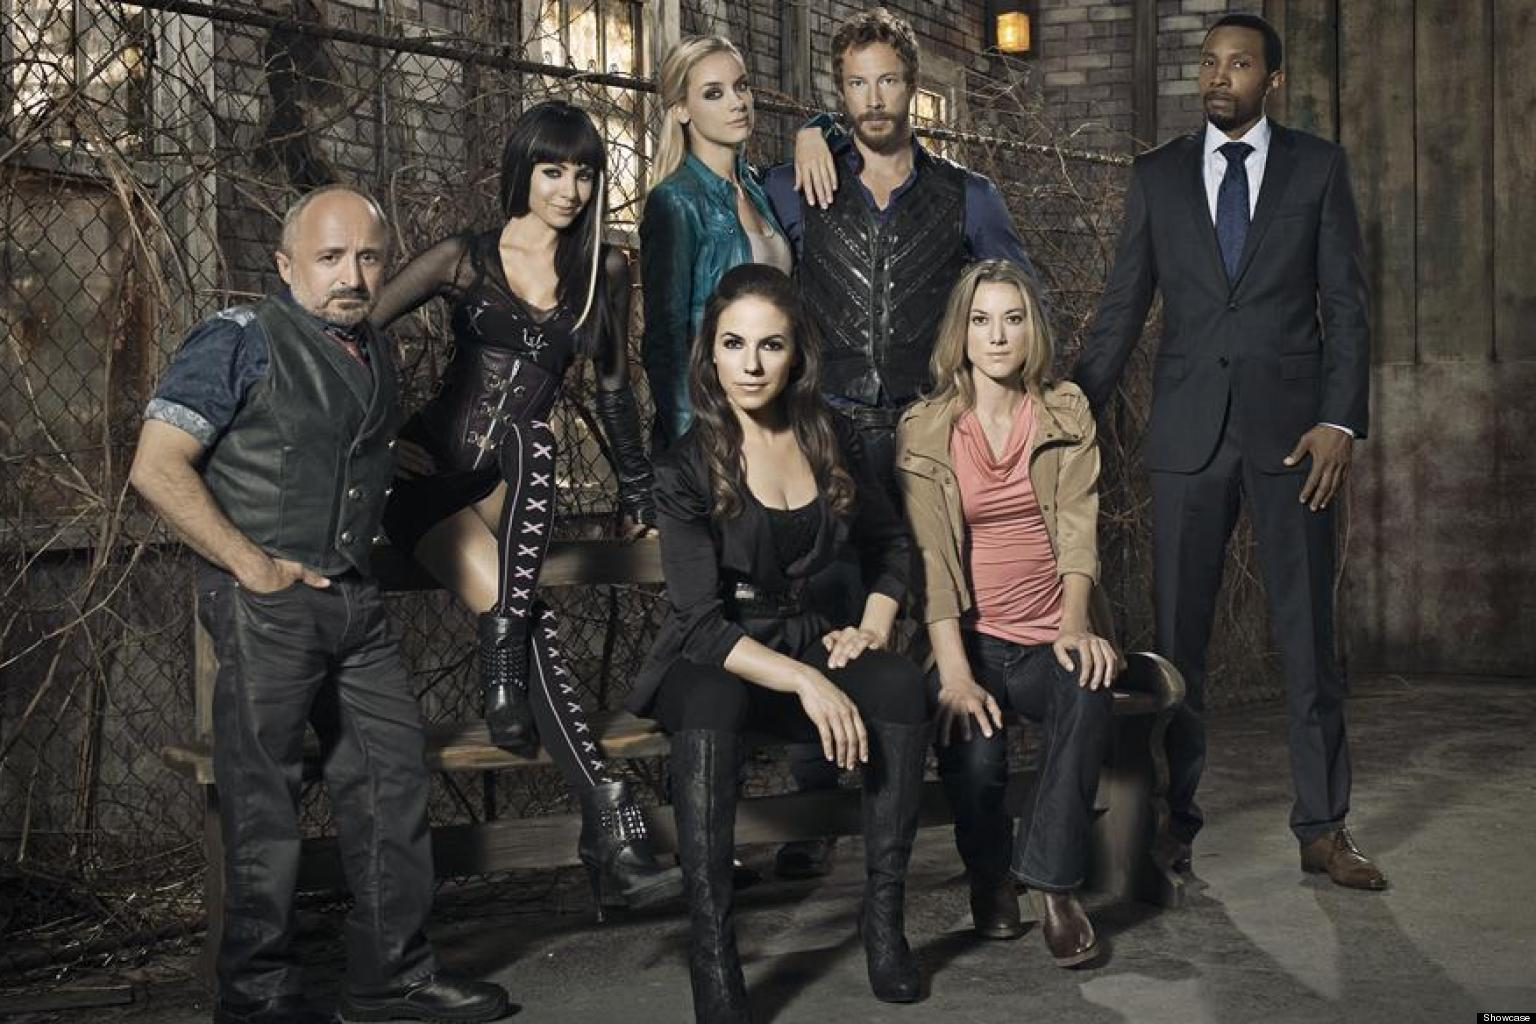 lost girl bo and dyson relationship season 3